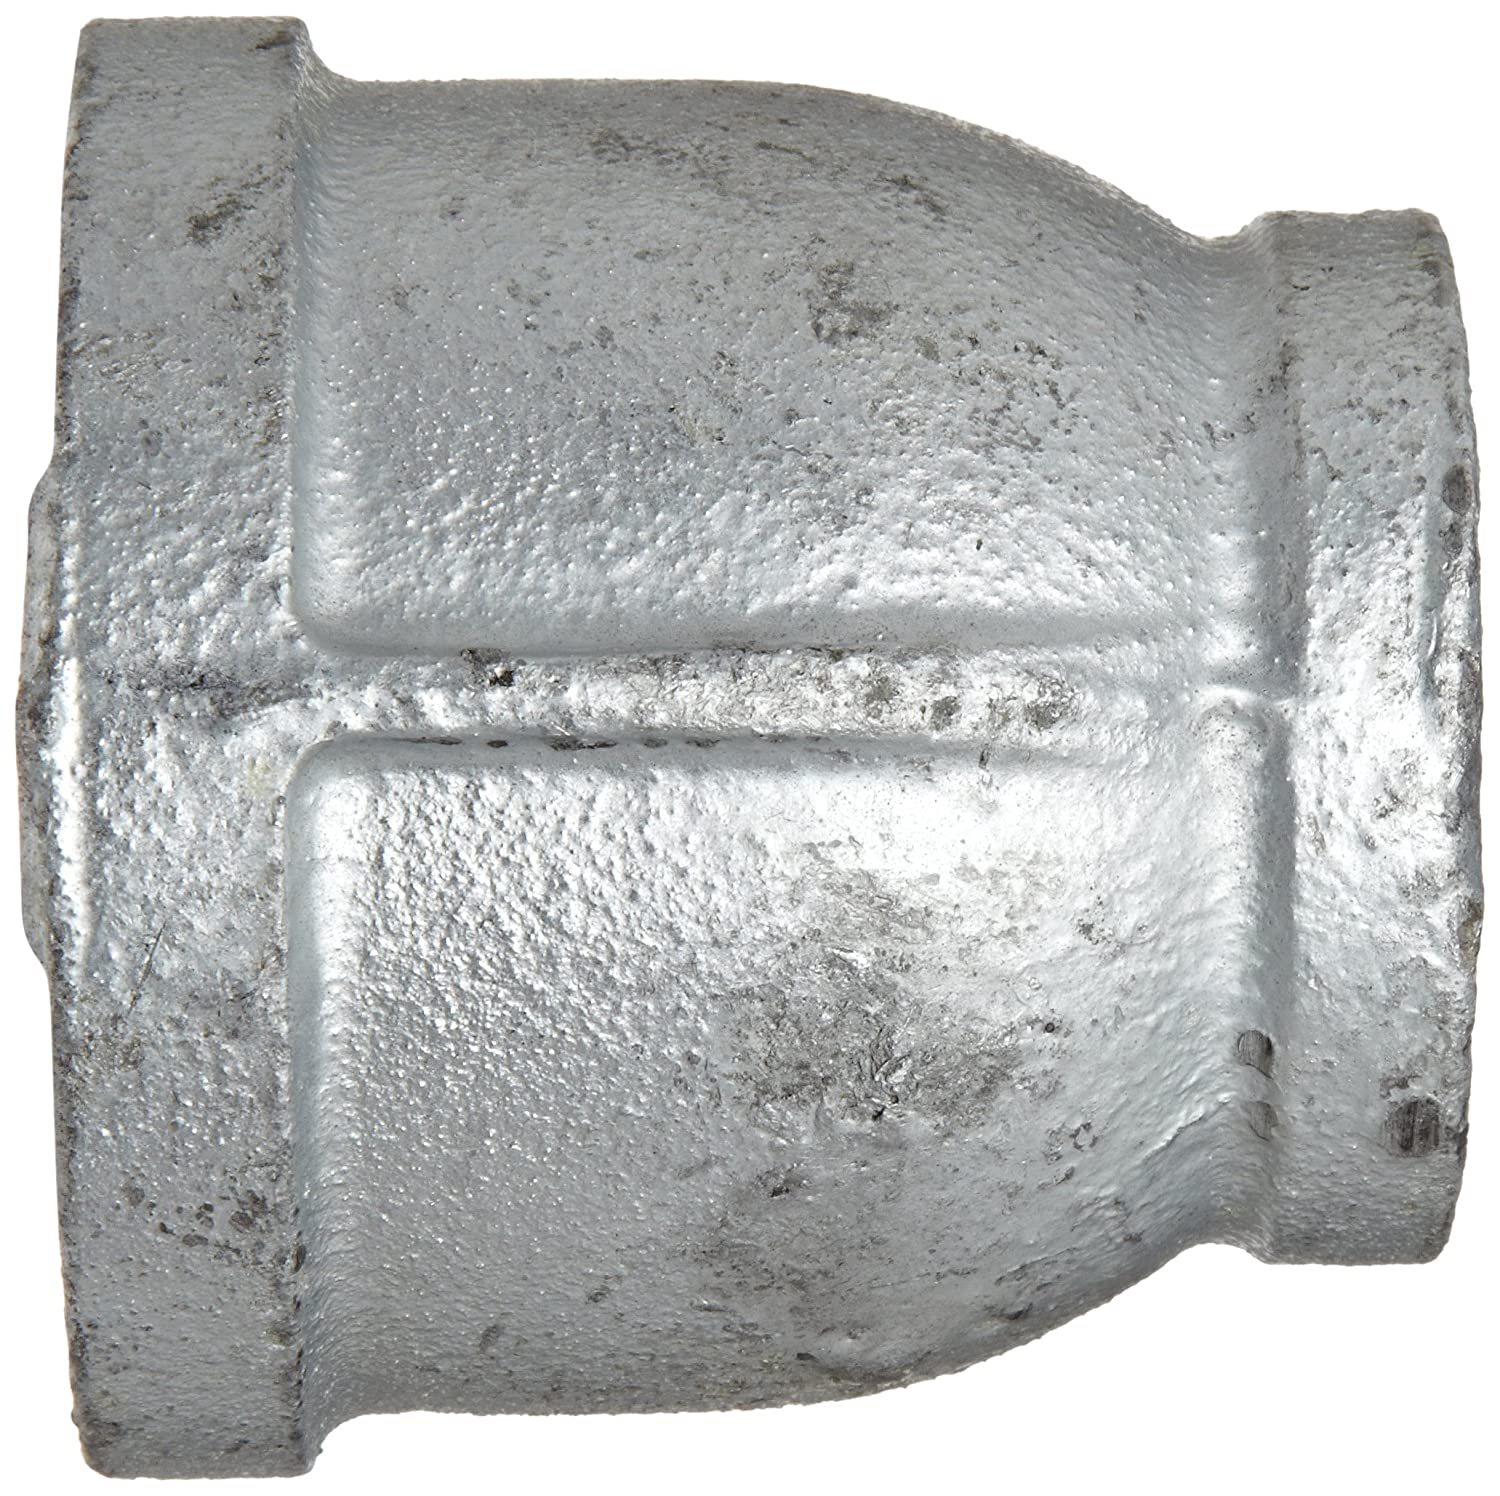 Reducer Coupling Malleable Iron Pipe Fitting 1 x 3//4 NPT Female Galvanized Finish Anvil 8700135406